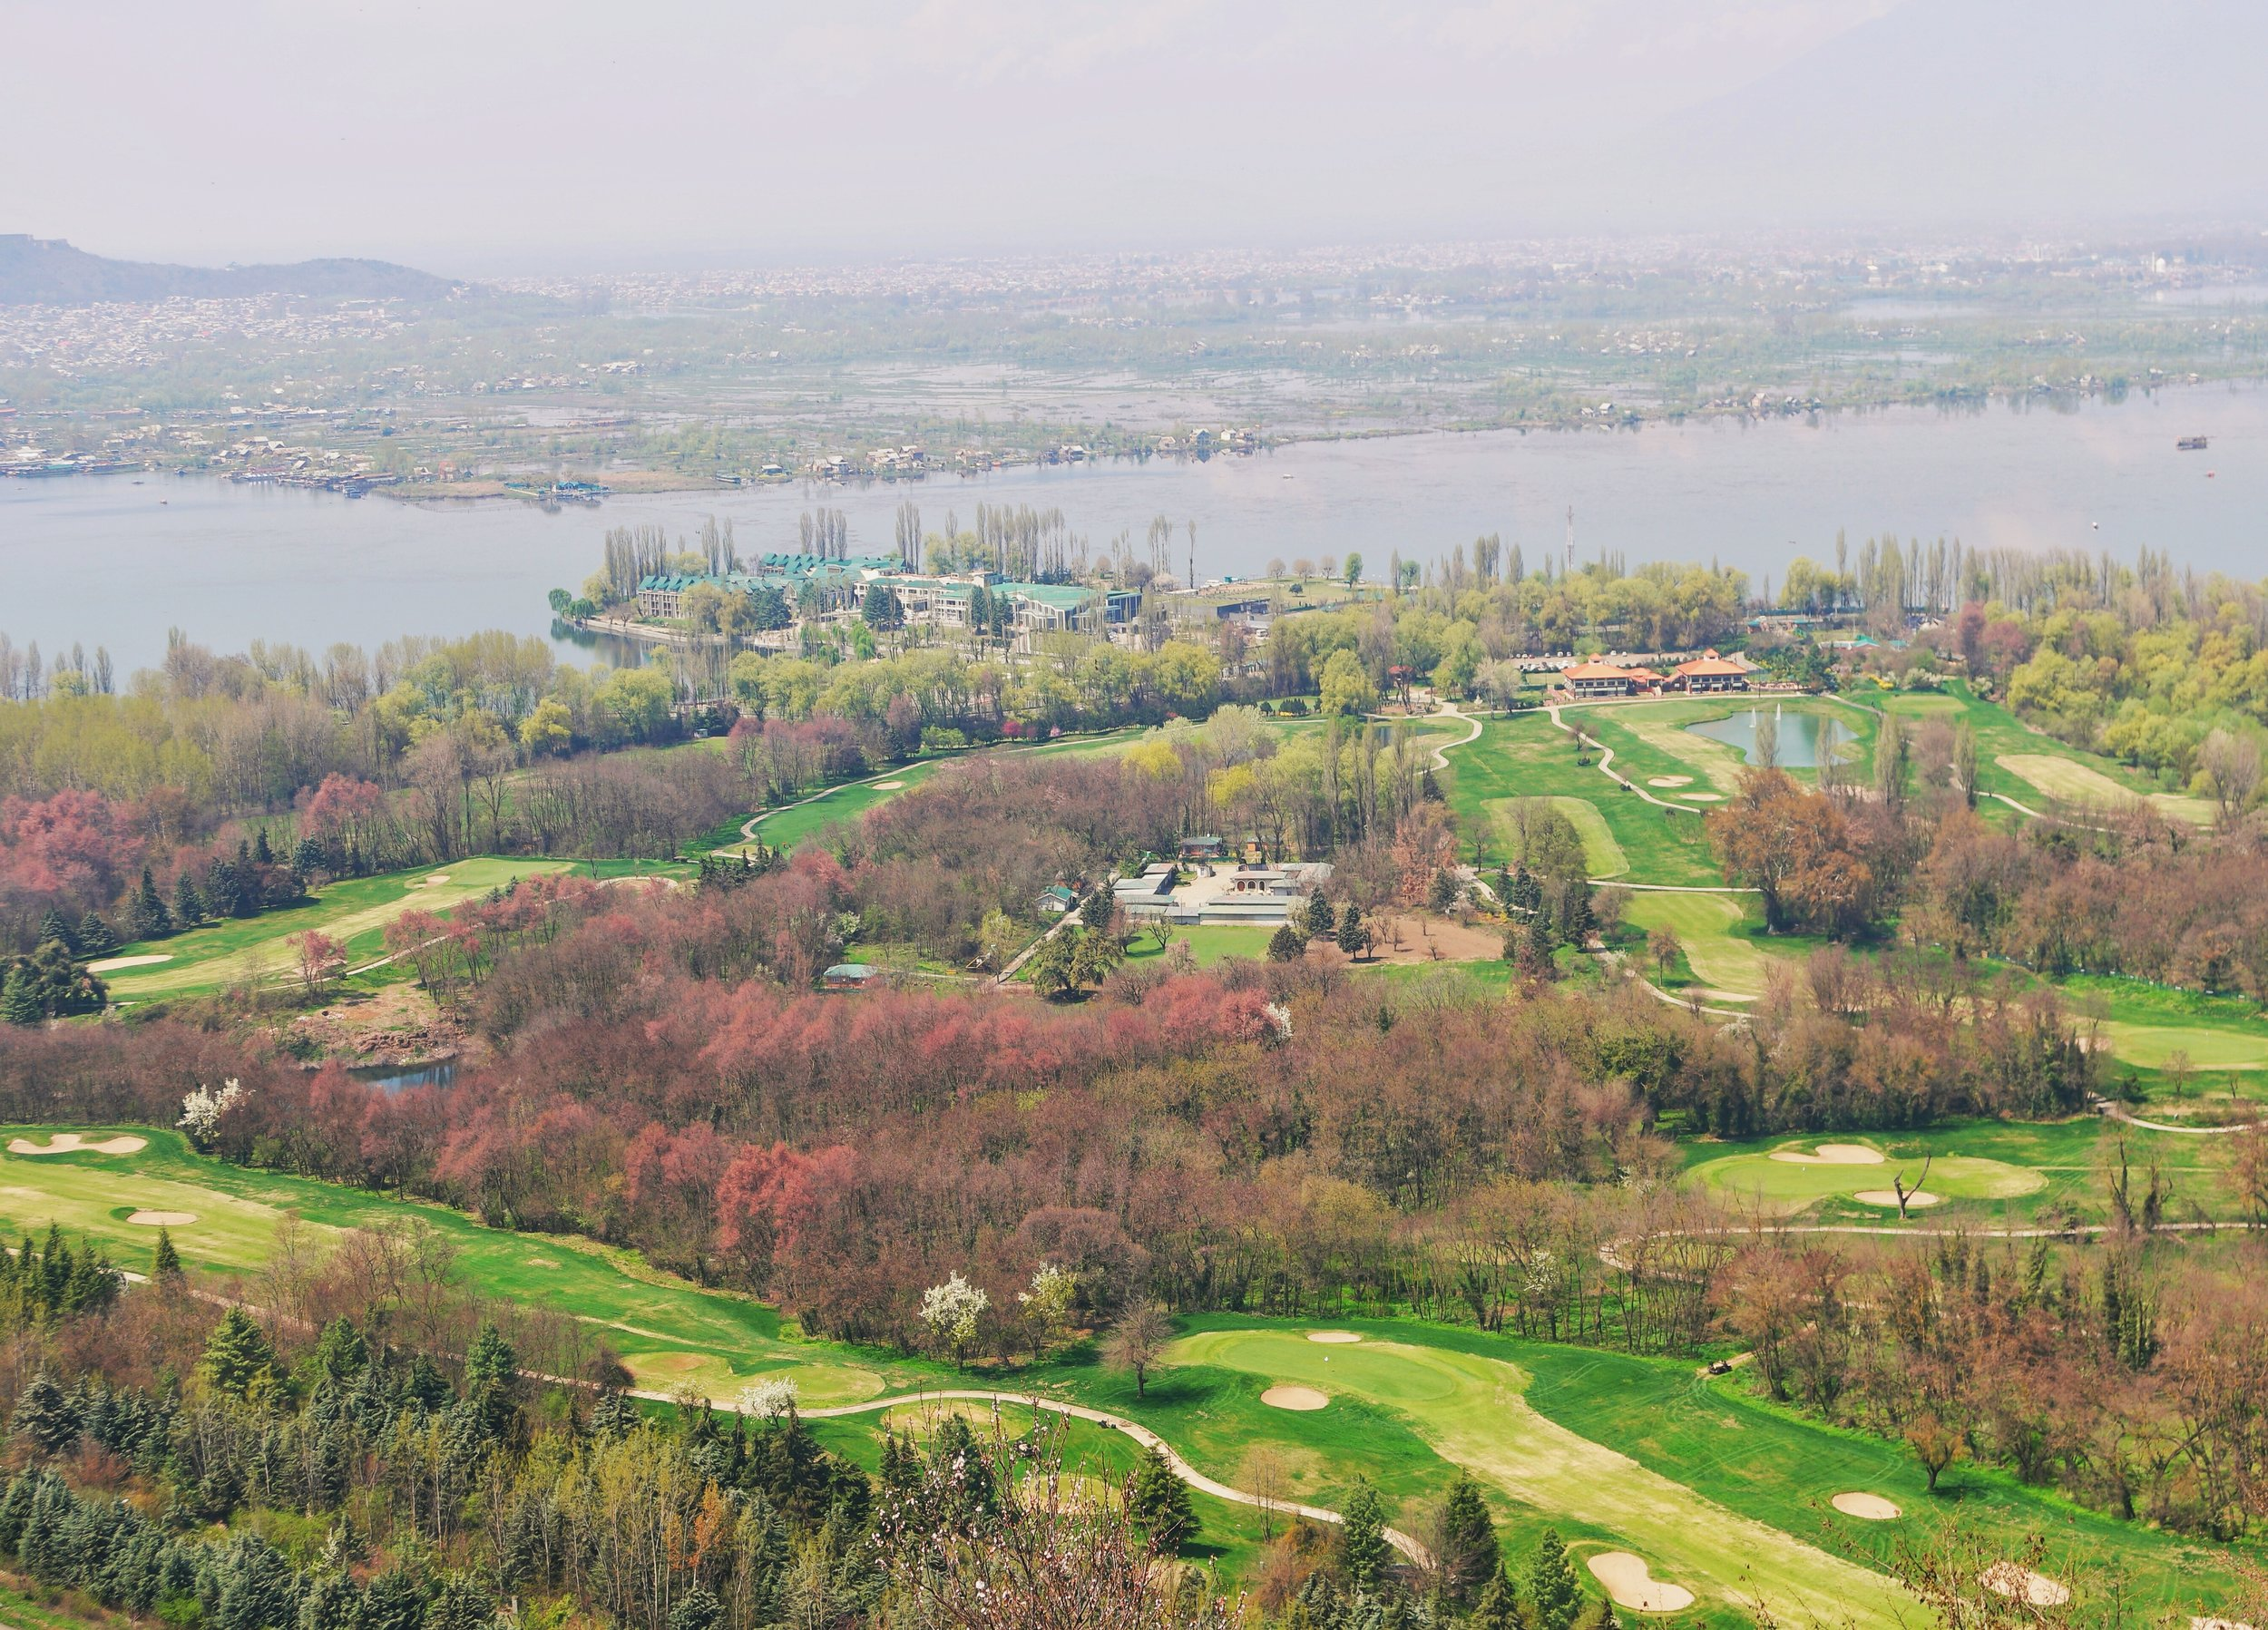 The Royal Springs Golf Course and the Dal Lake as seen from the Pari Mahal.